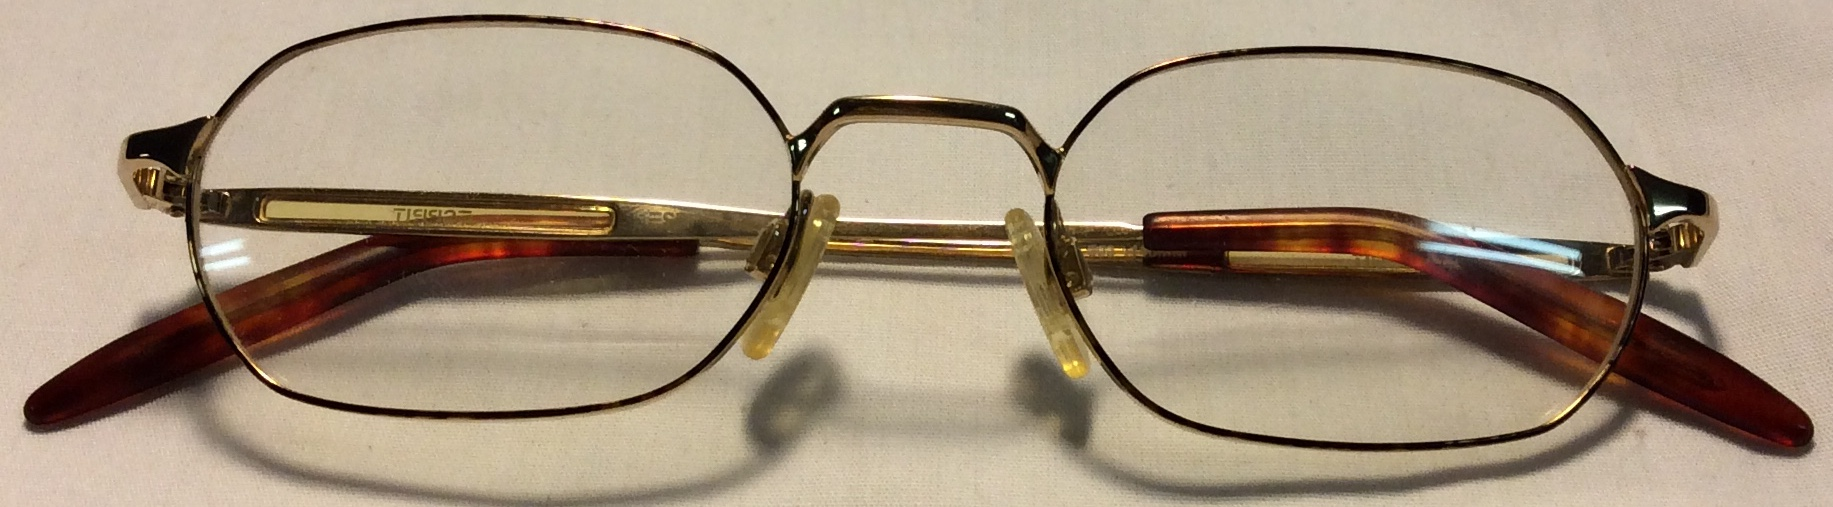 Esprit Thin gold metal frames